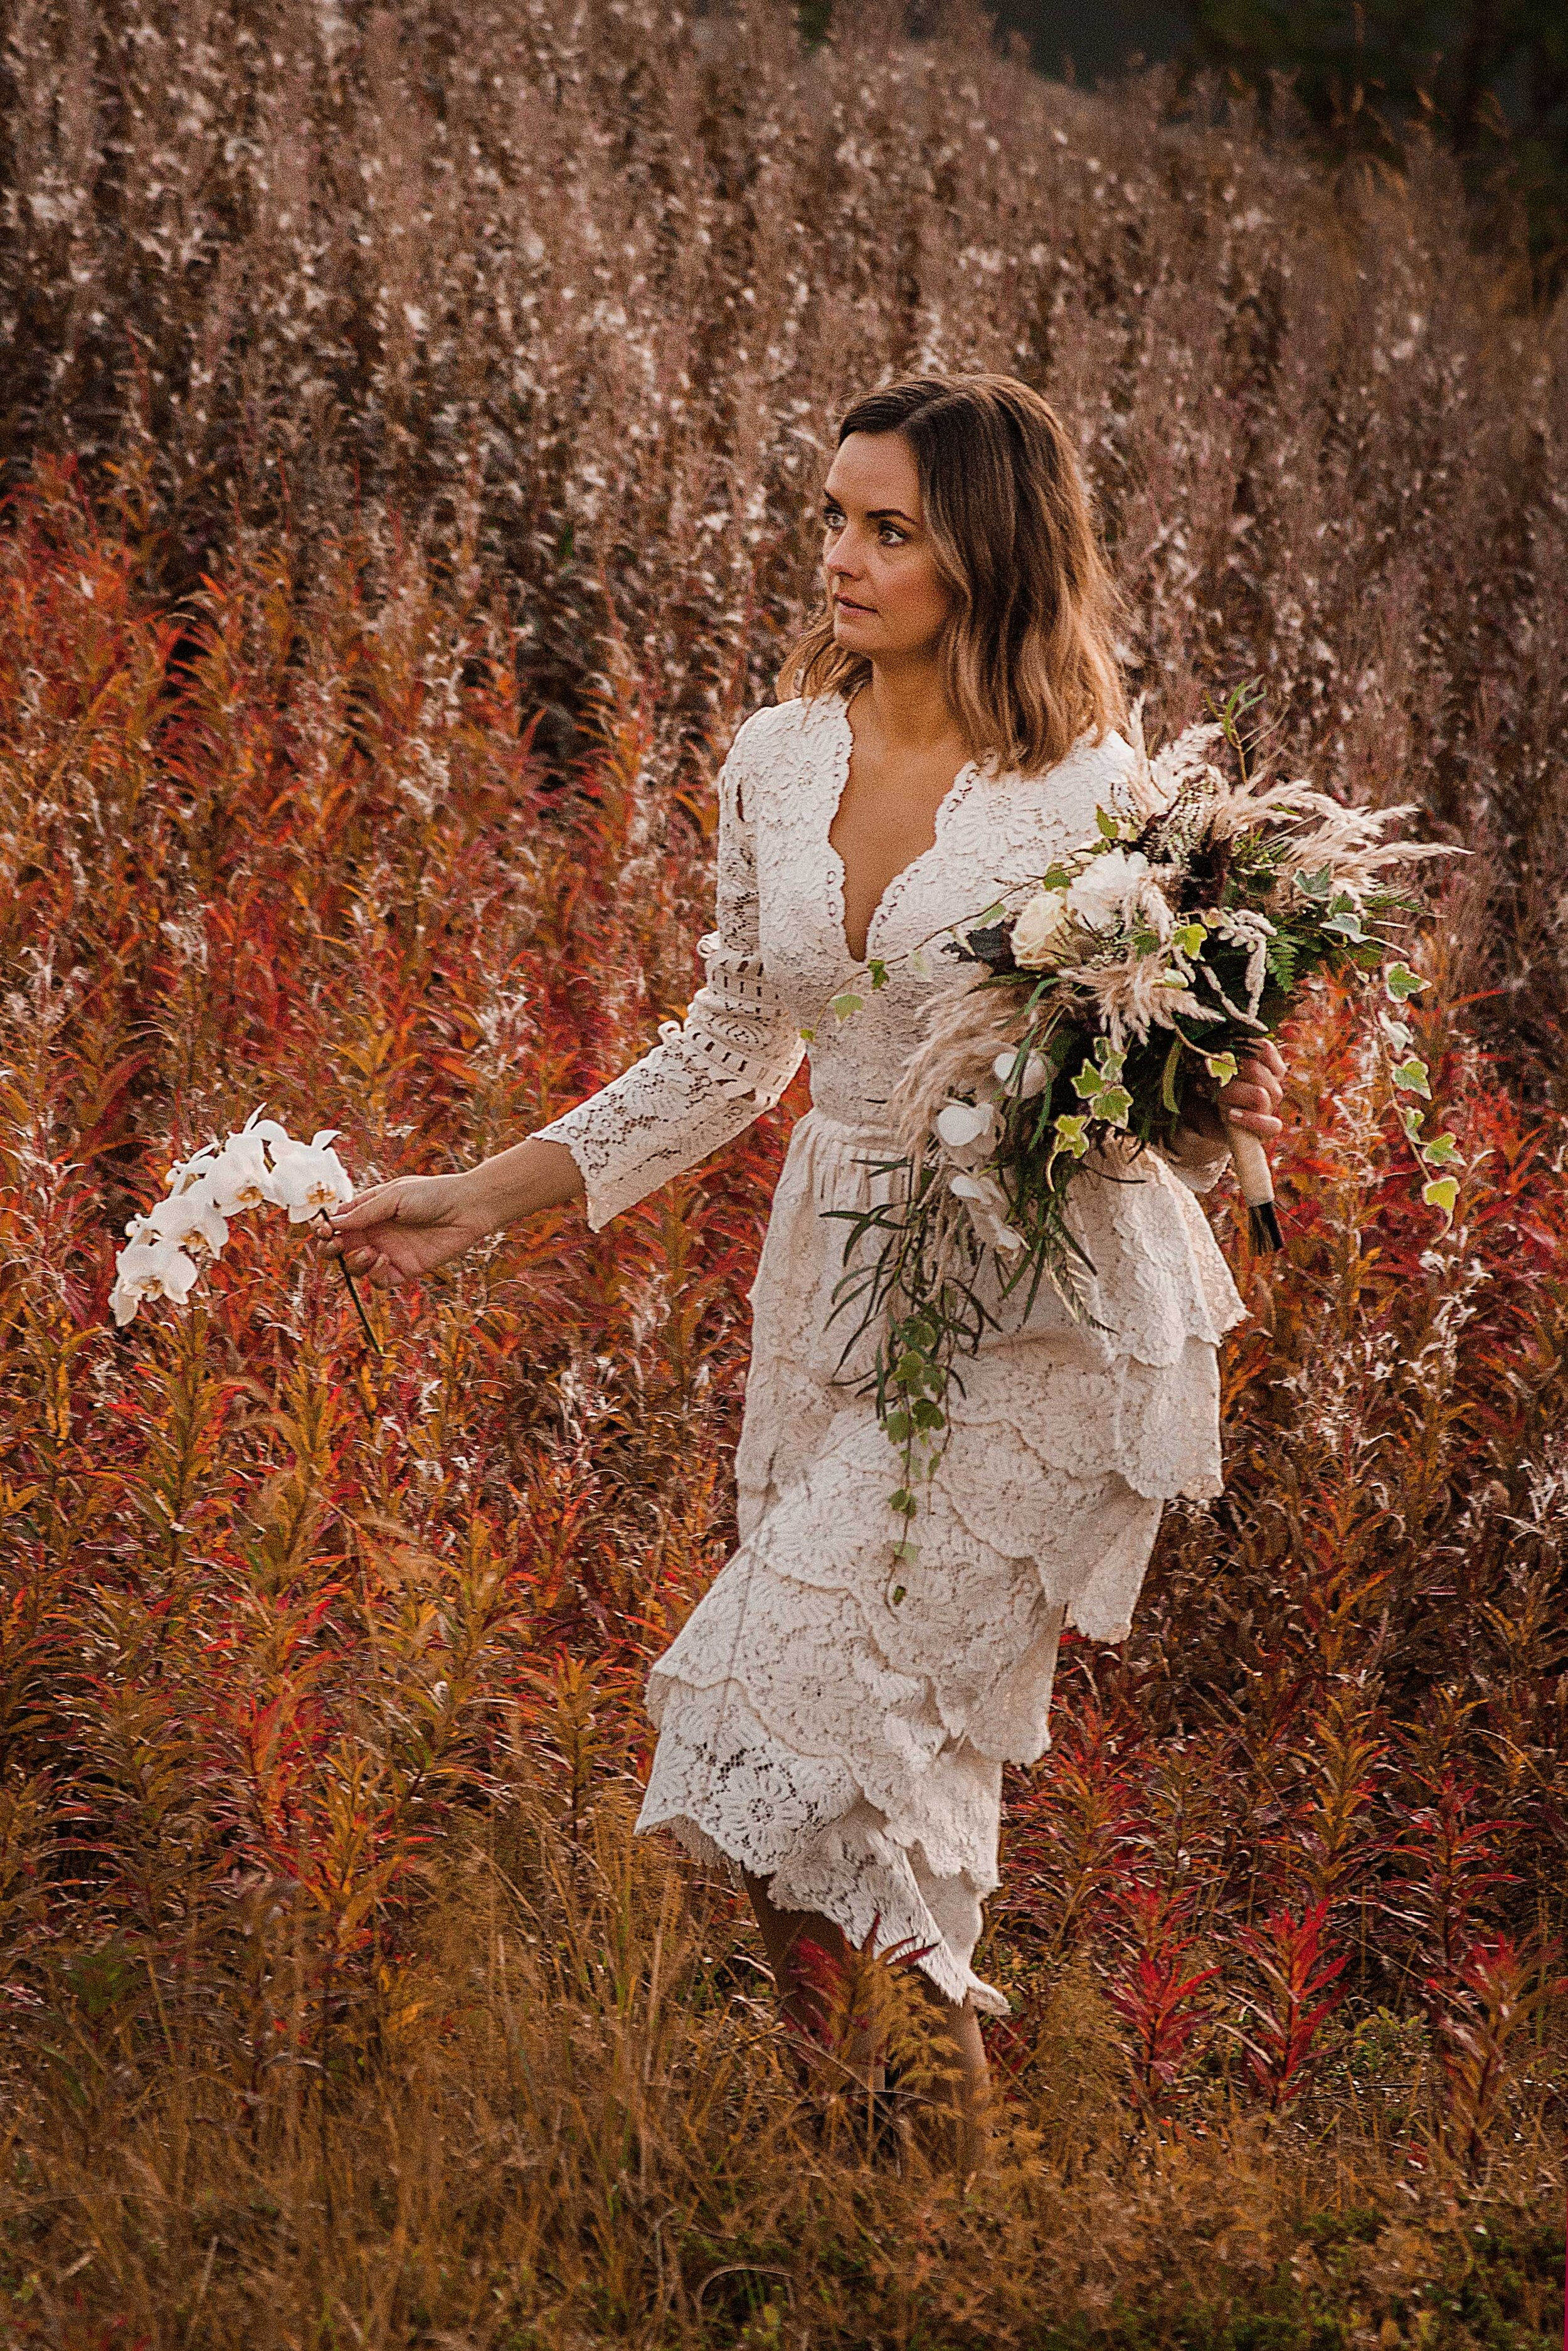 This lace dress was made for the workshop and do not belong to our own brand. But if you are interested in the dress it can be ordered in your own dimensions by emailing  kristina@sistersinlaw.se . The beautiful bridal bouquet is made by florist  @ine_holand  who works in Leknes, Lofoten.